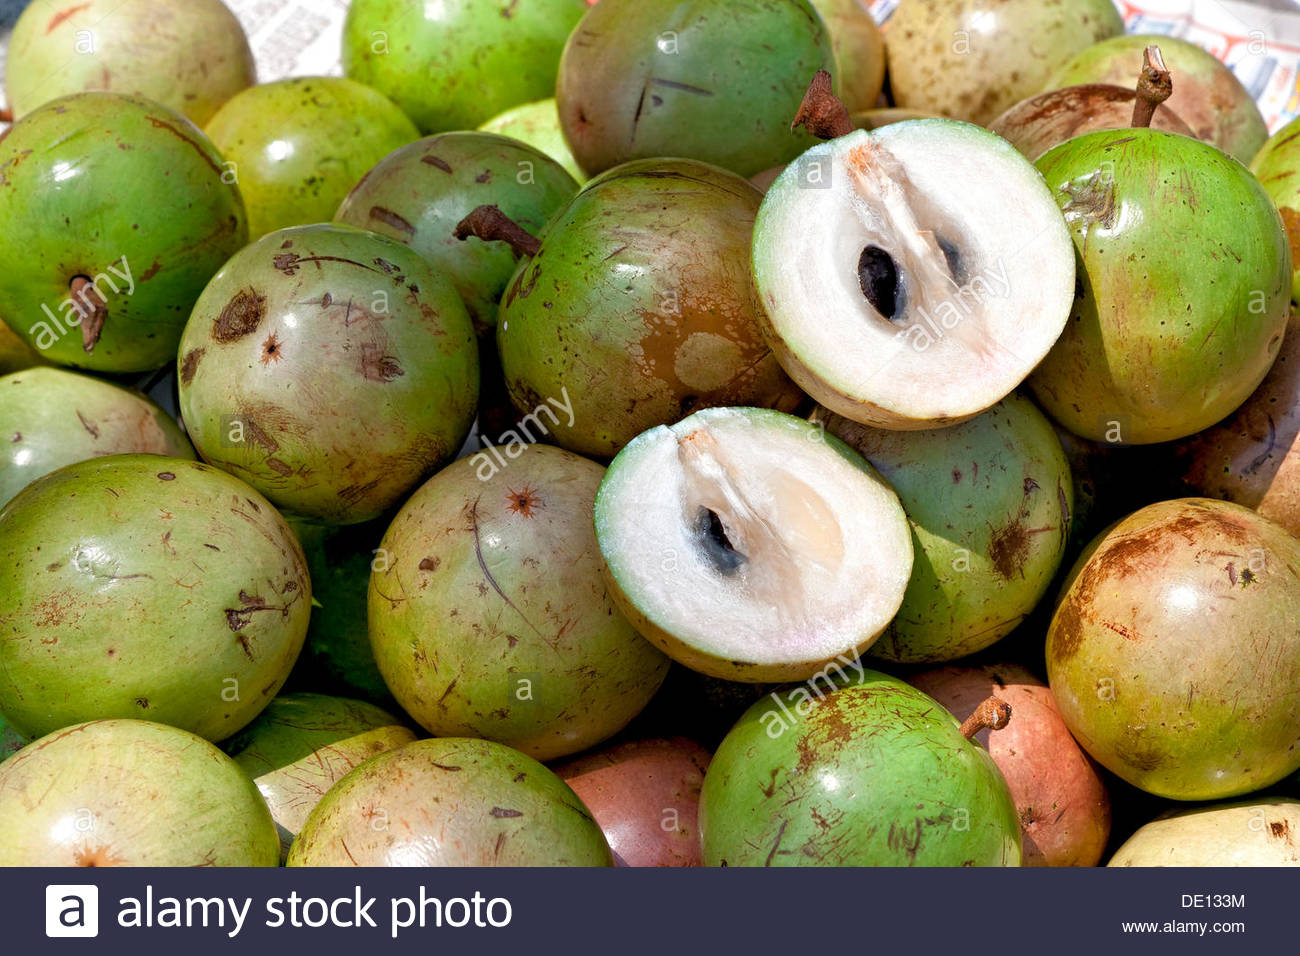 Star Apple or Kaymito. It's fruit season in Cebu. Come